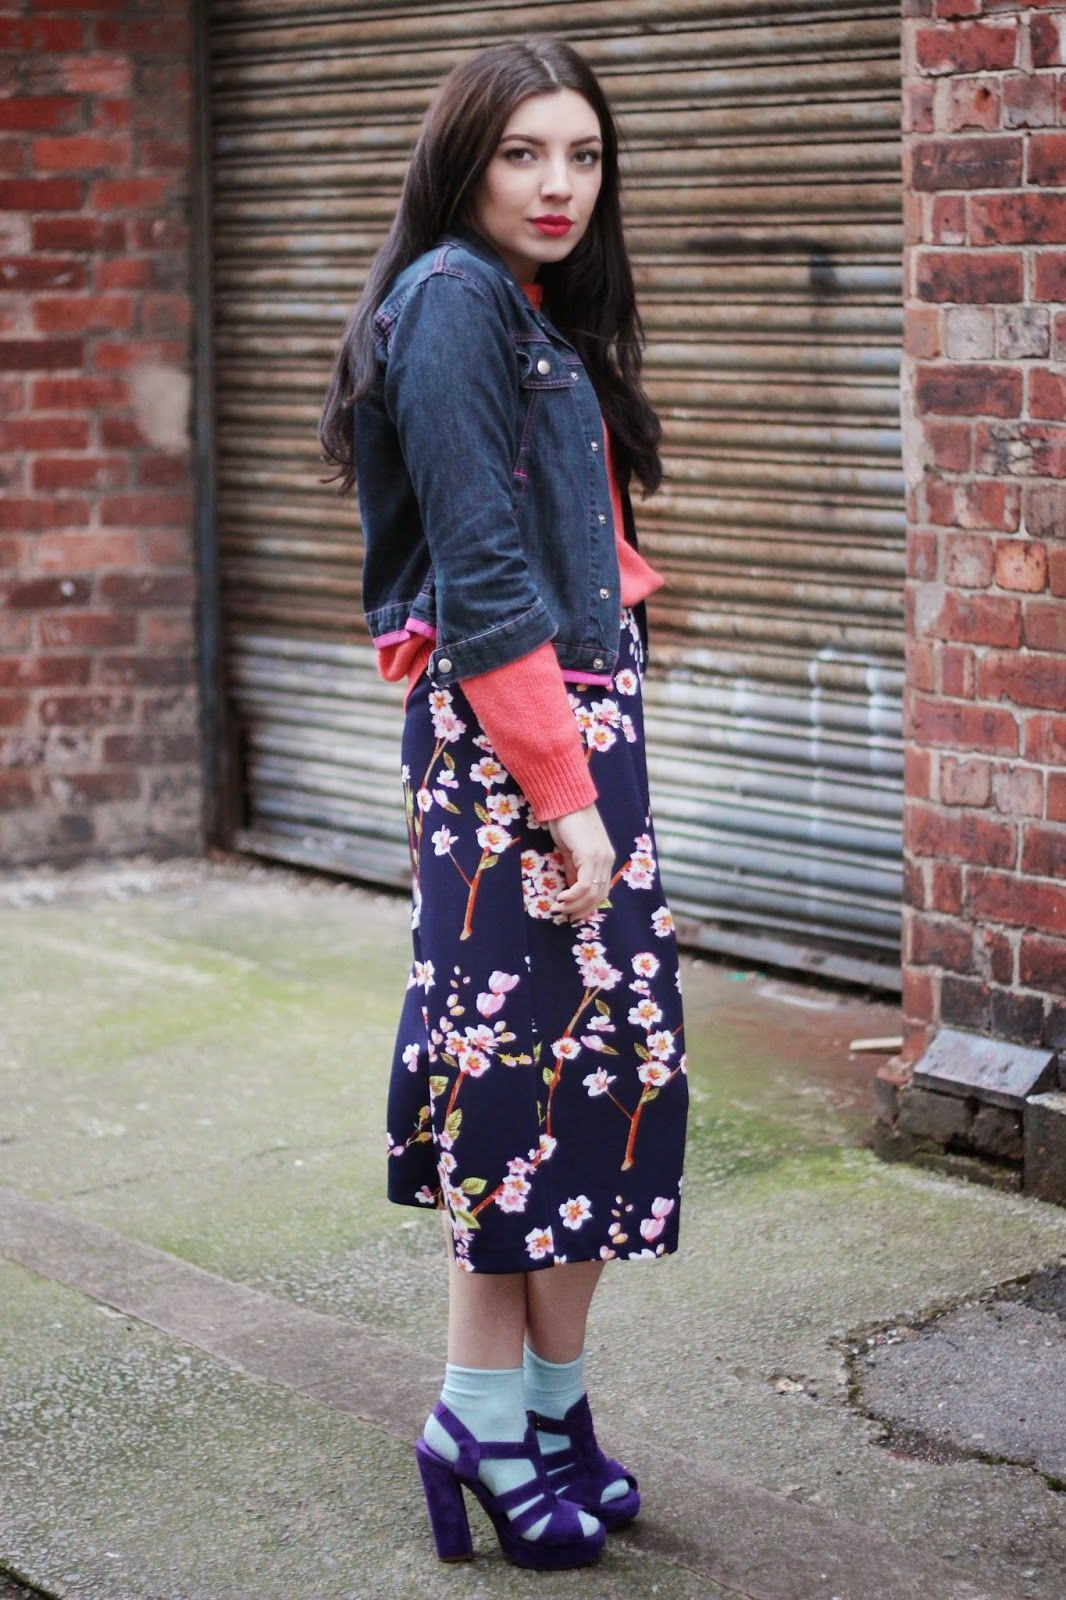 Vintage Primark Spring Culottes Socks Sandals Denim Jacket Outfit Street Style Blogger Fashion